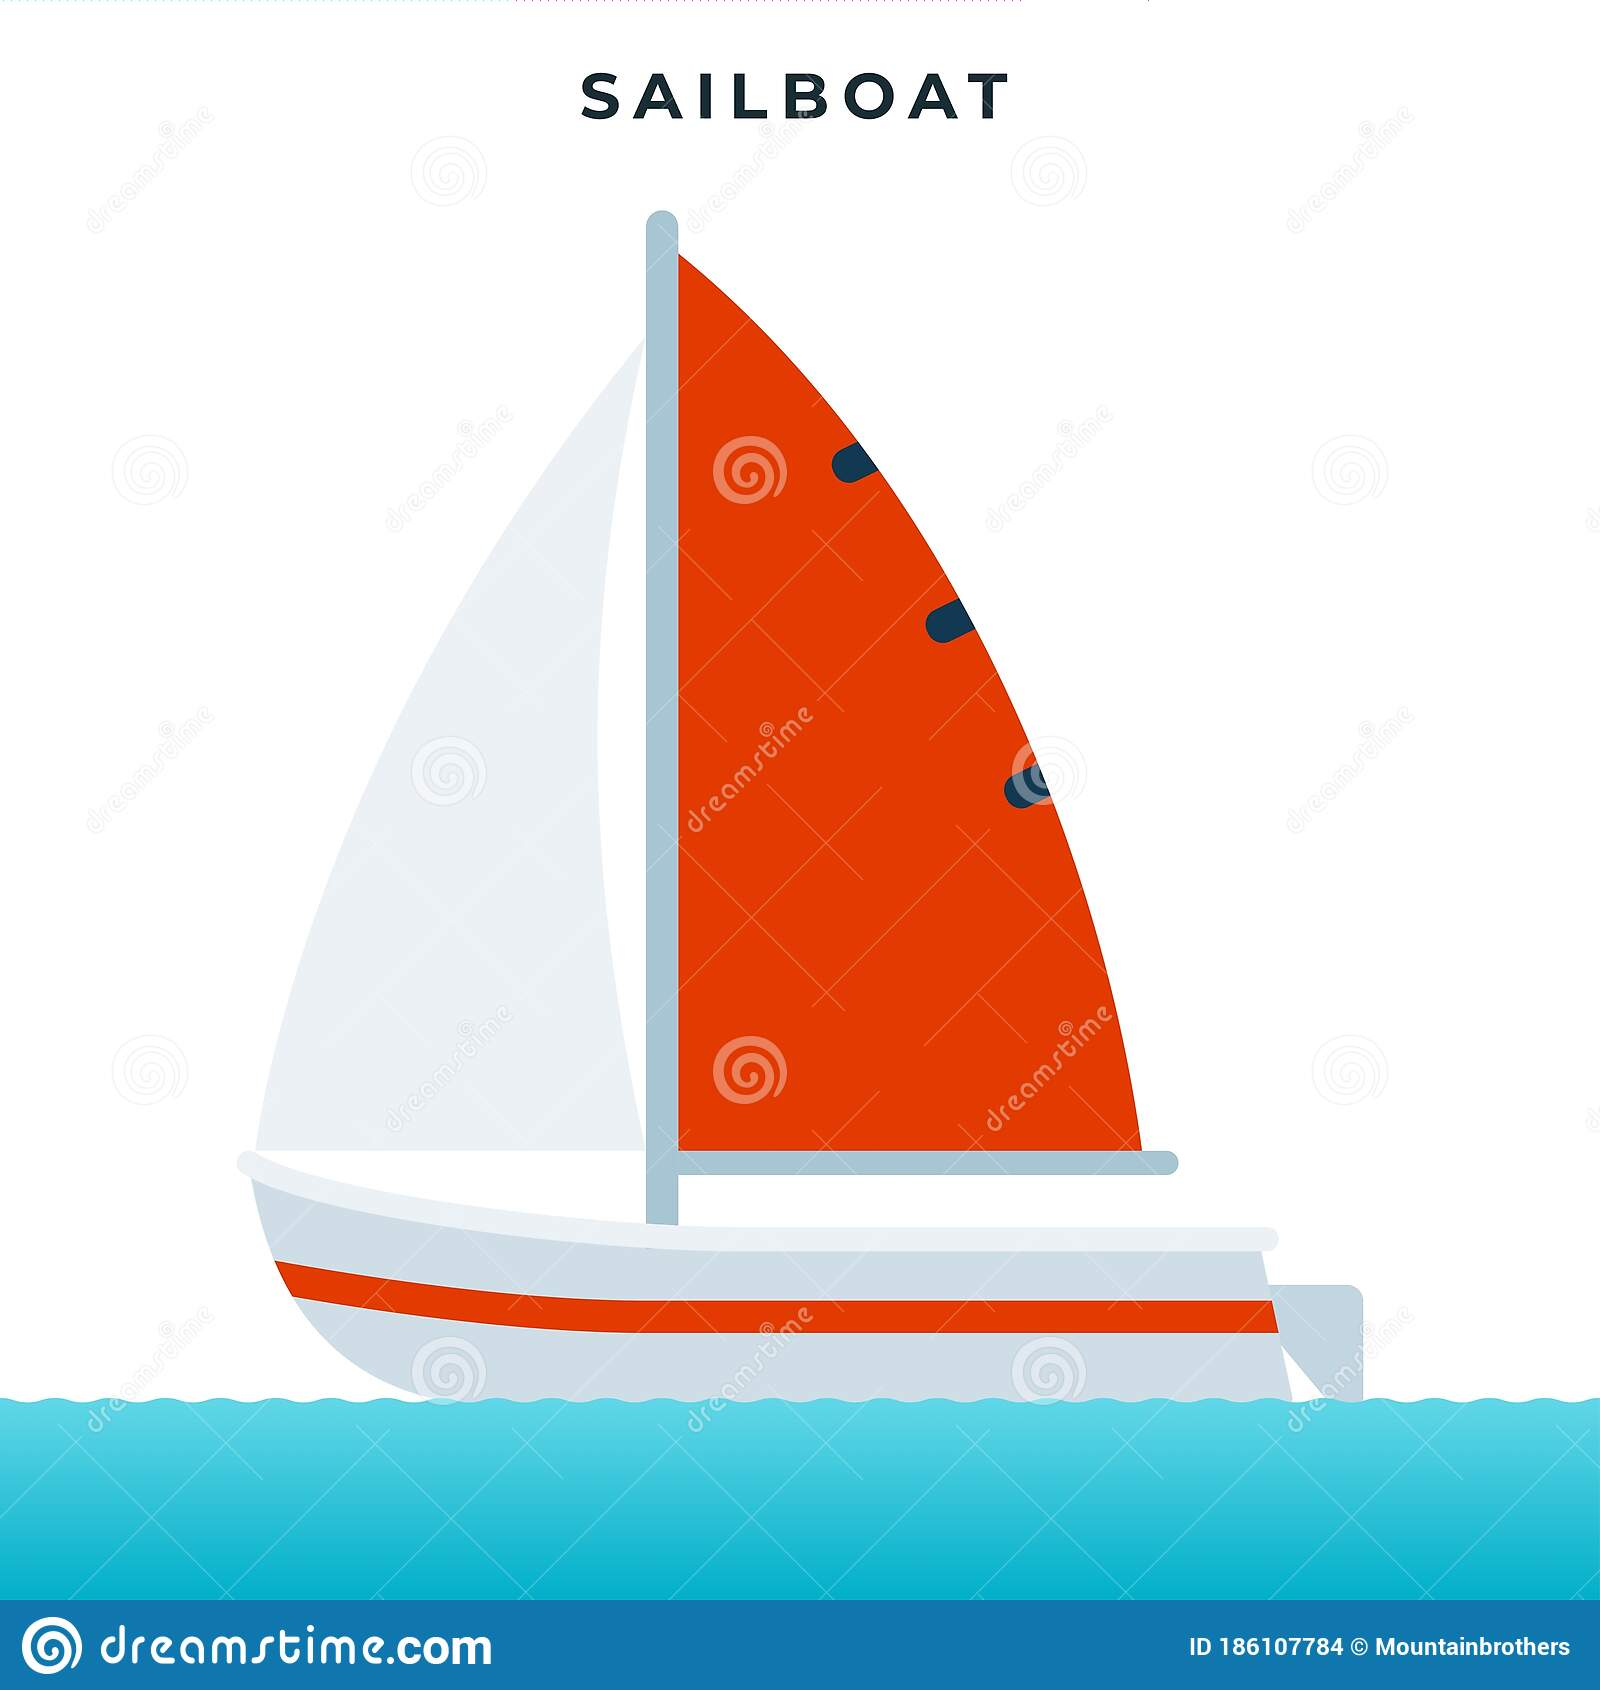 Sailboat Pleasure Boat Using Sails As The Main Means Of Propulsion Vector Icon Flat Isolated Stock Vector Illustration Of Floating Symbol 186107784